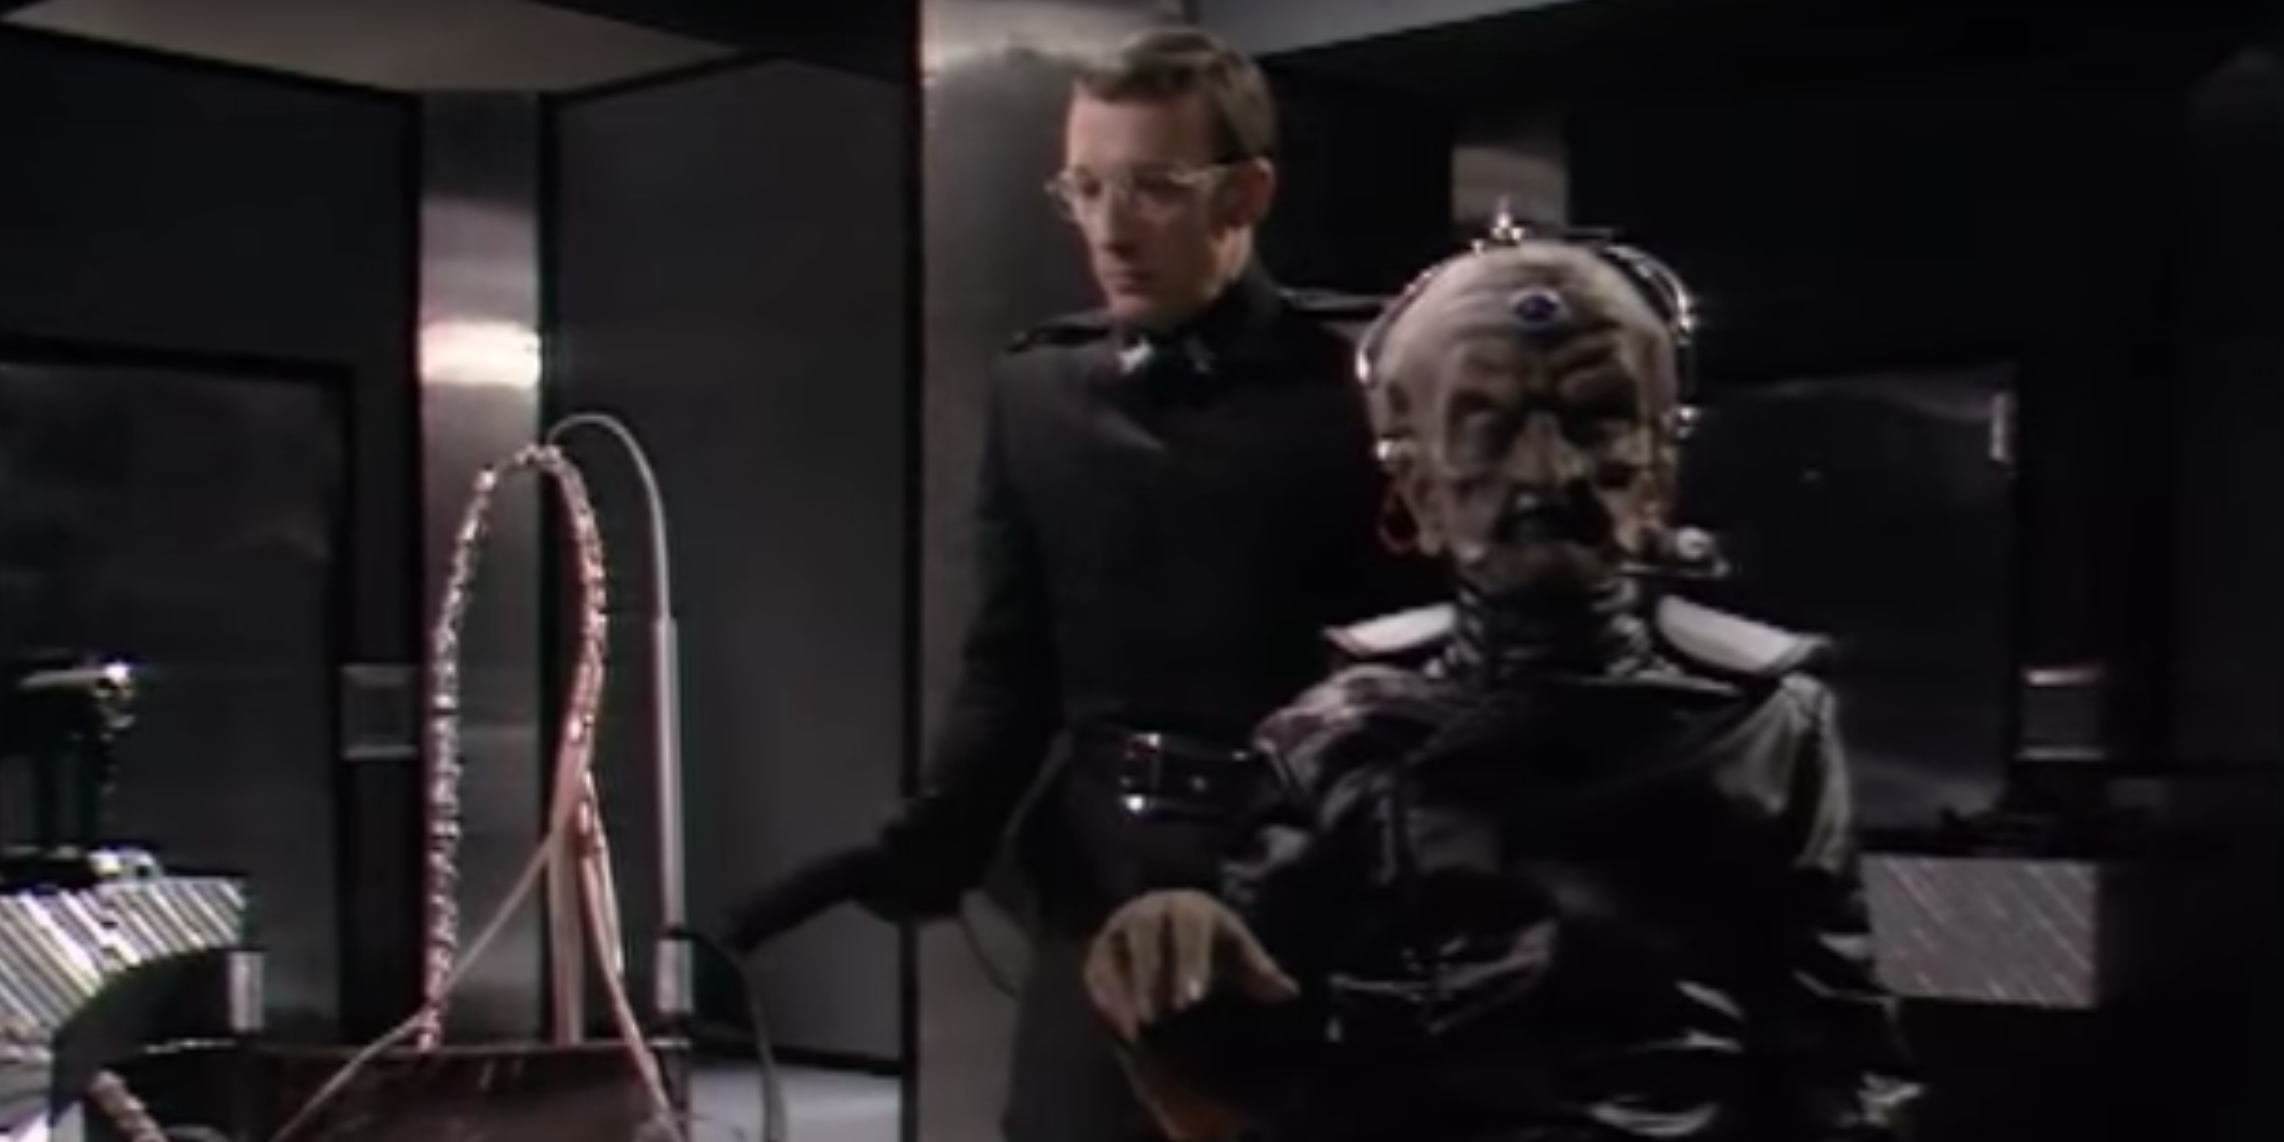 Nyder and Davros in Doctor Who, Genesis of the Daleks